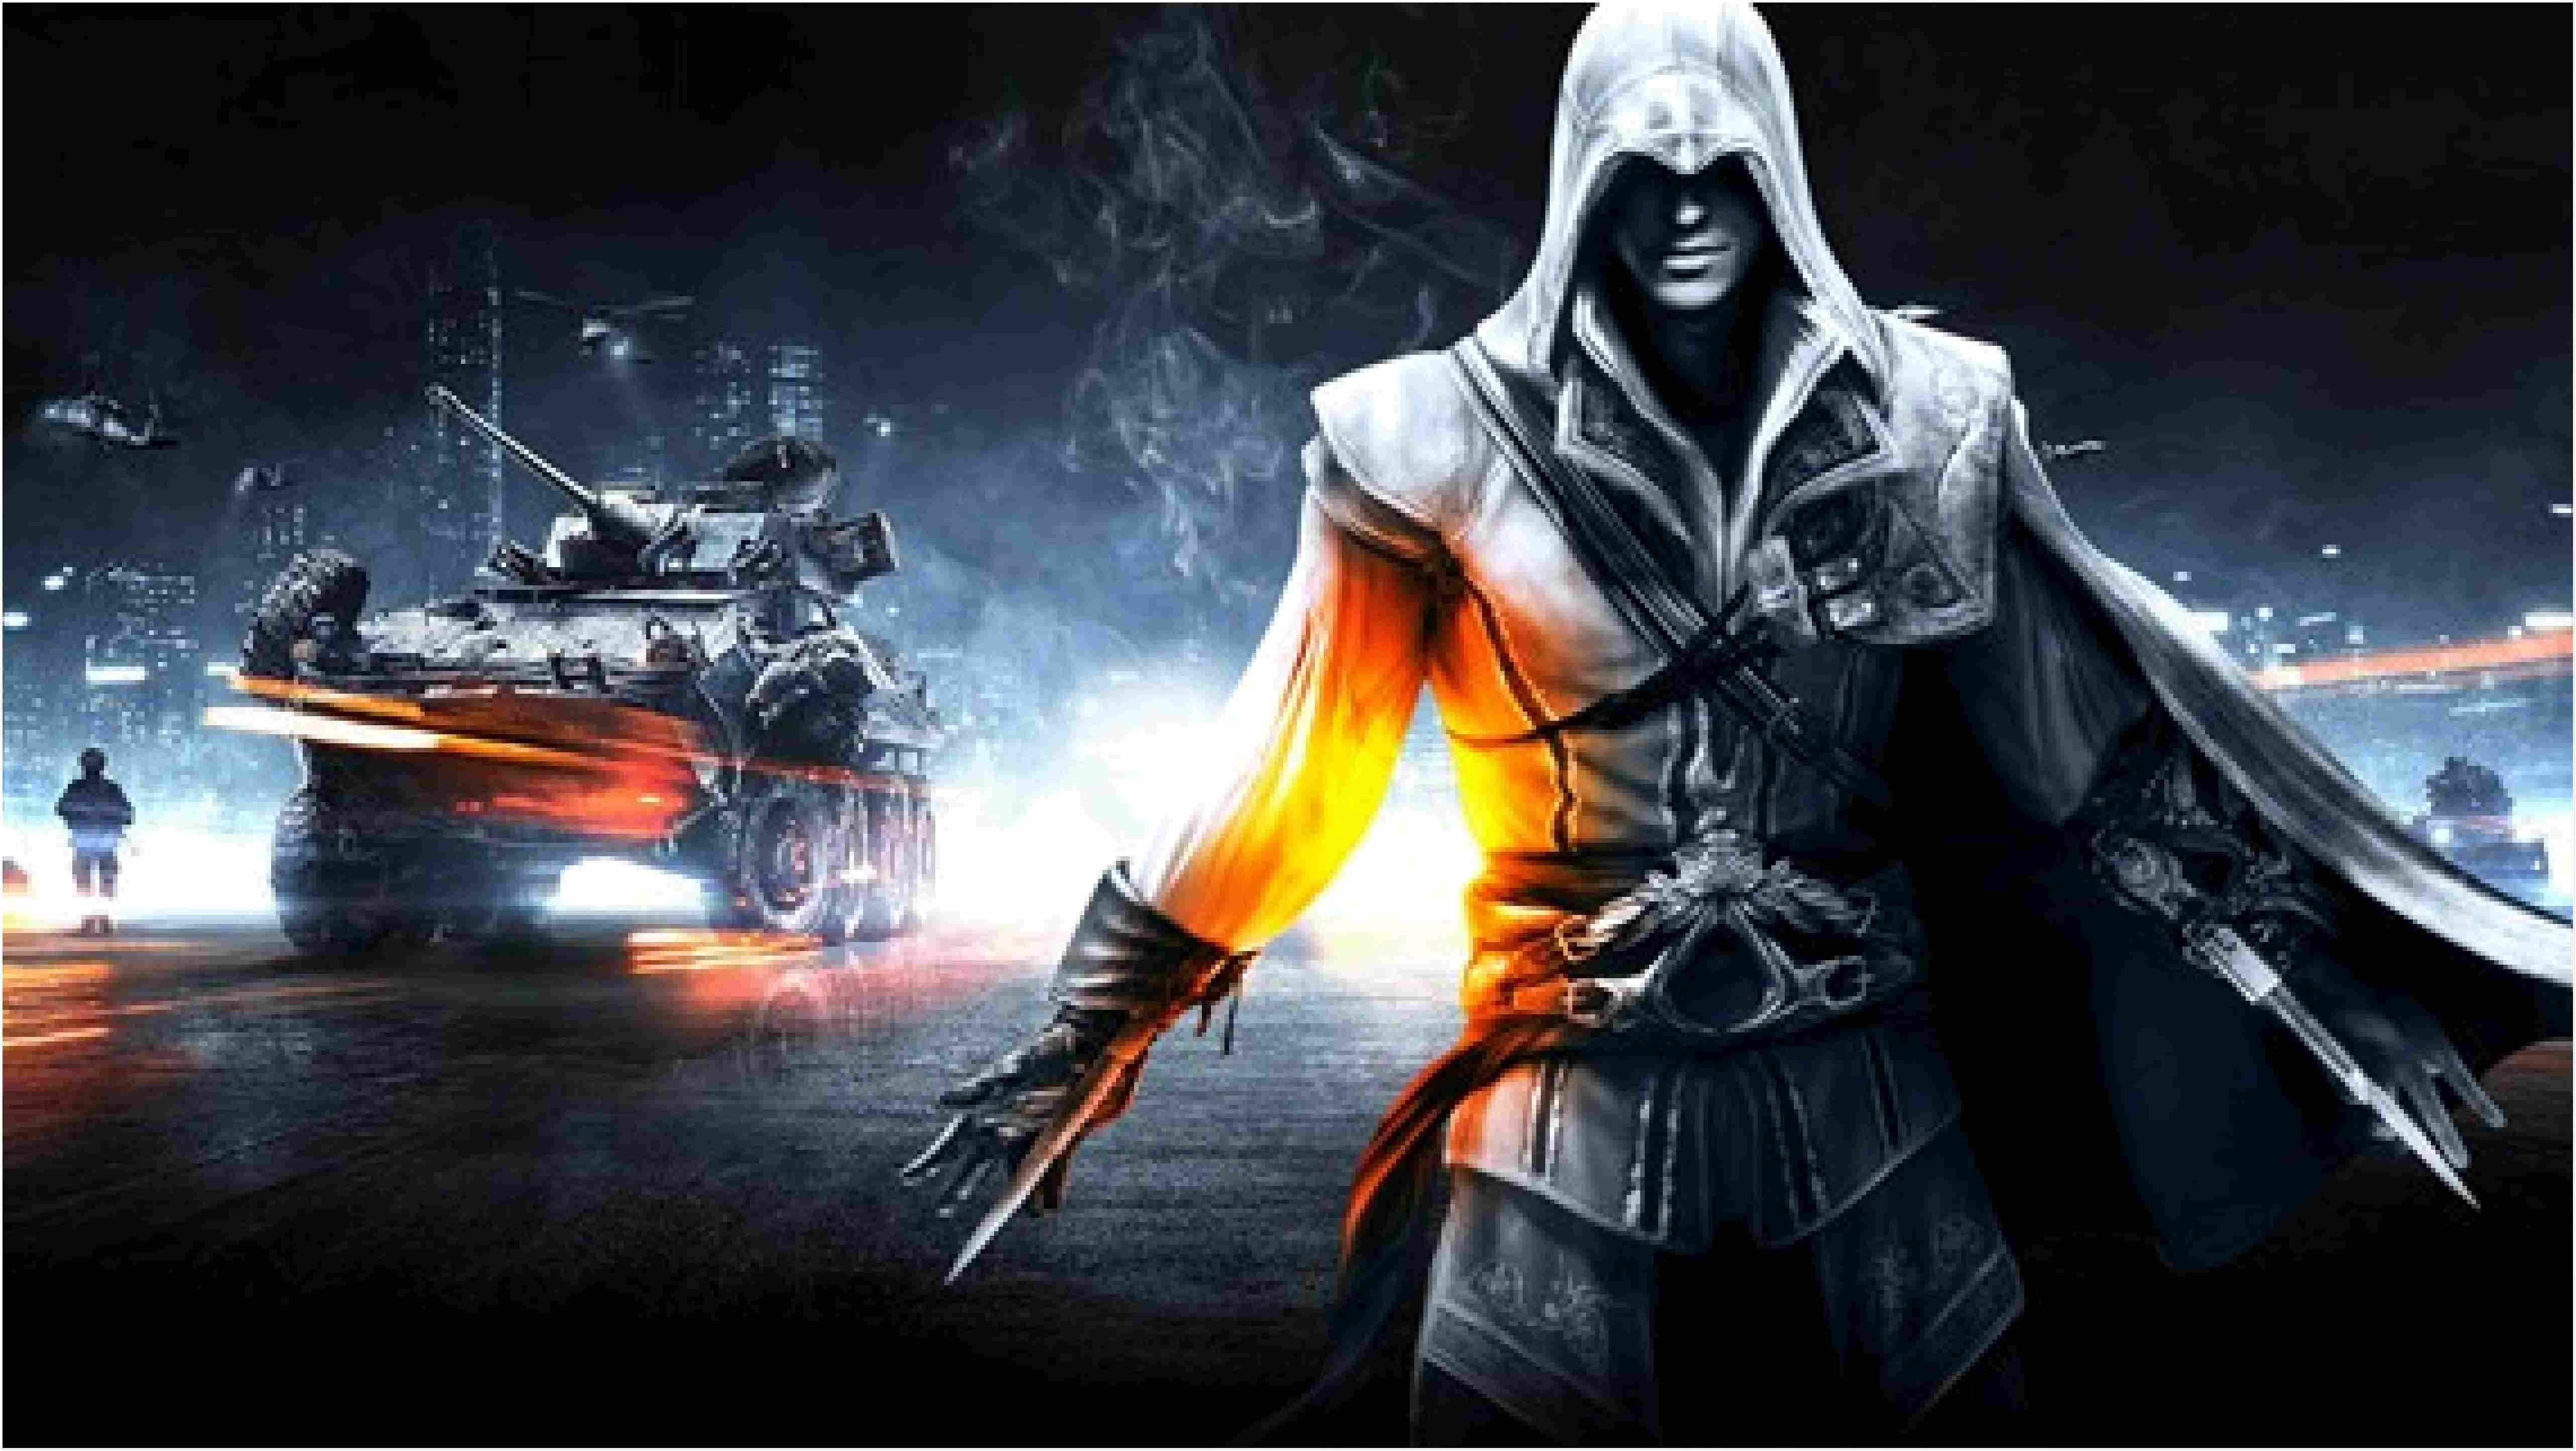 Best Of 14 Video Game Wallpapers In 2020 Hd Wallpapers For Pc Cool Wallpapers For Pc Best Gaming Wallpapers